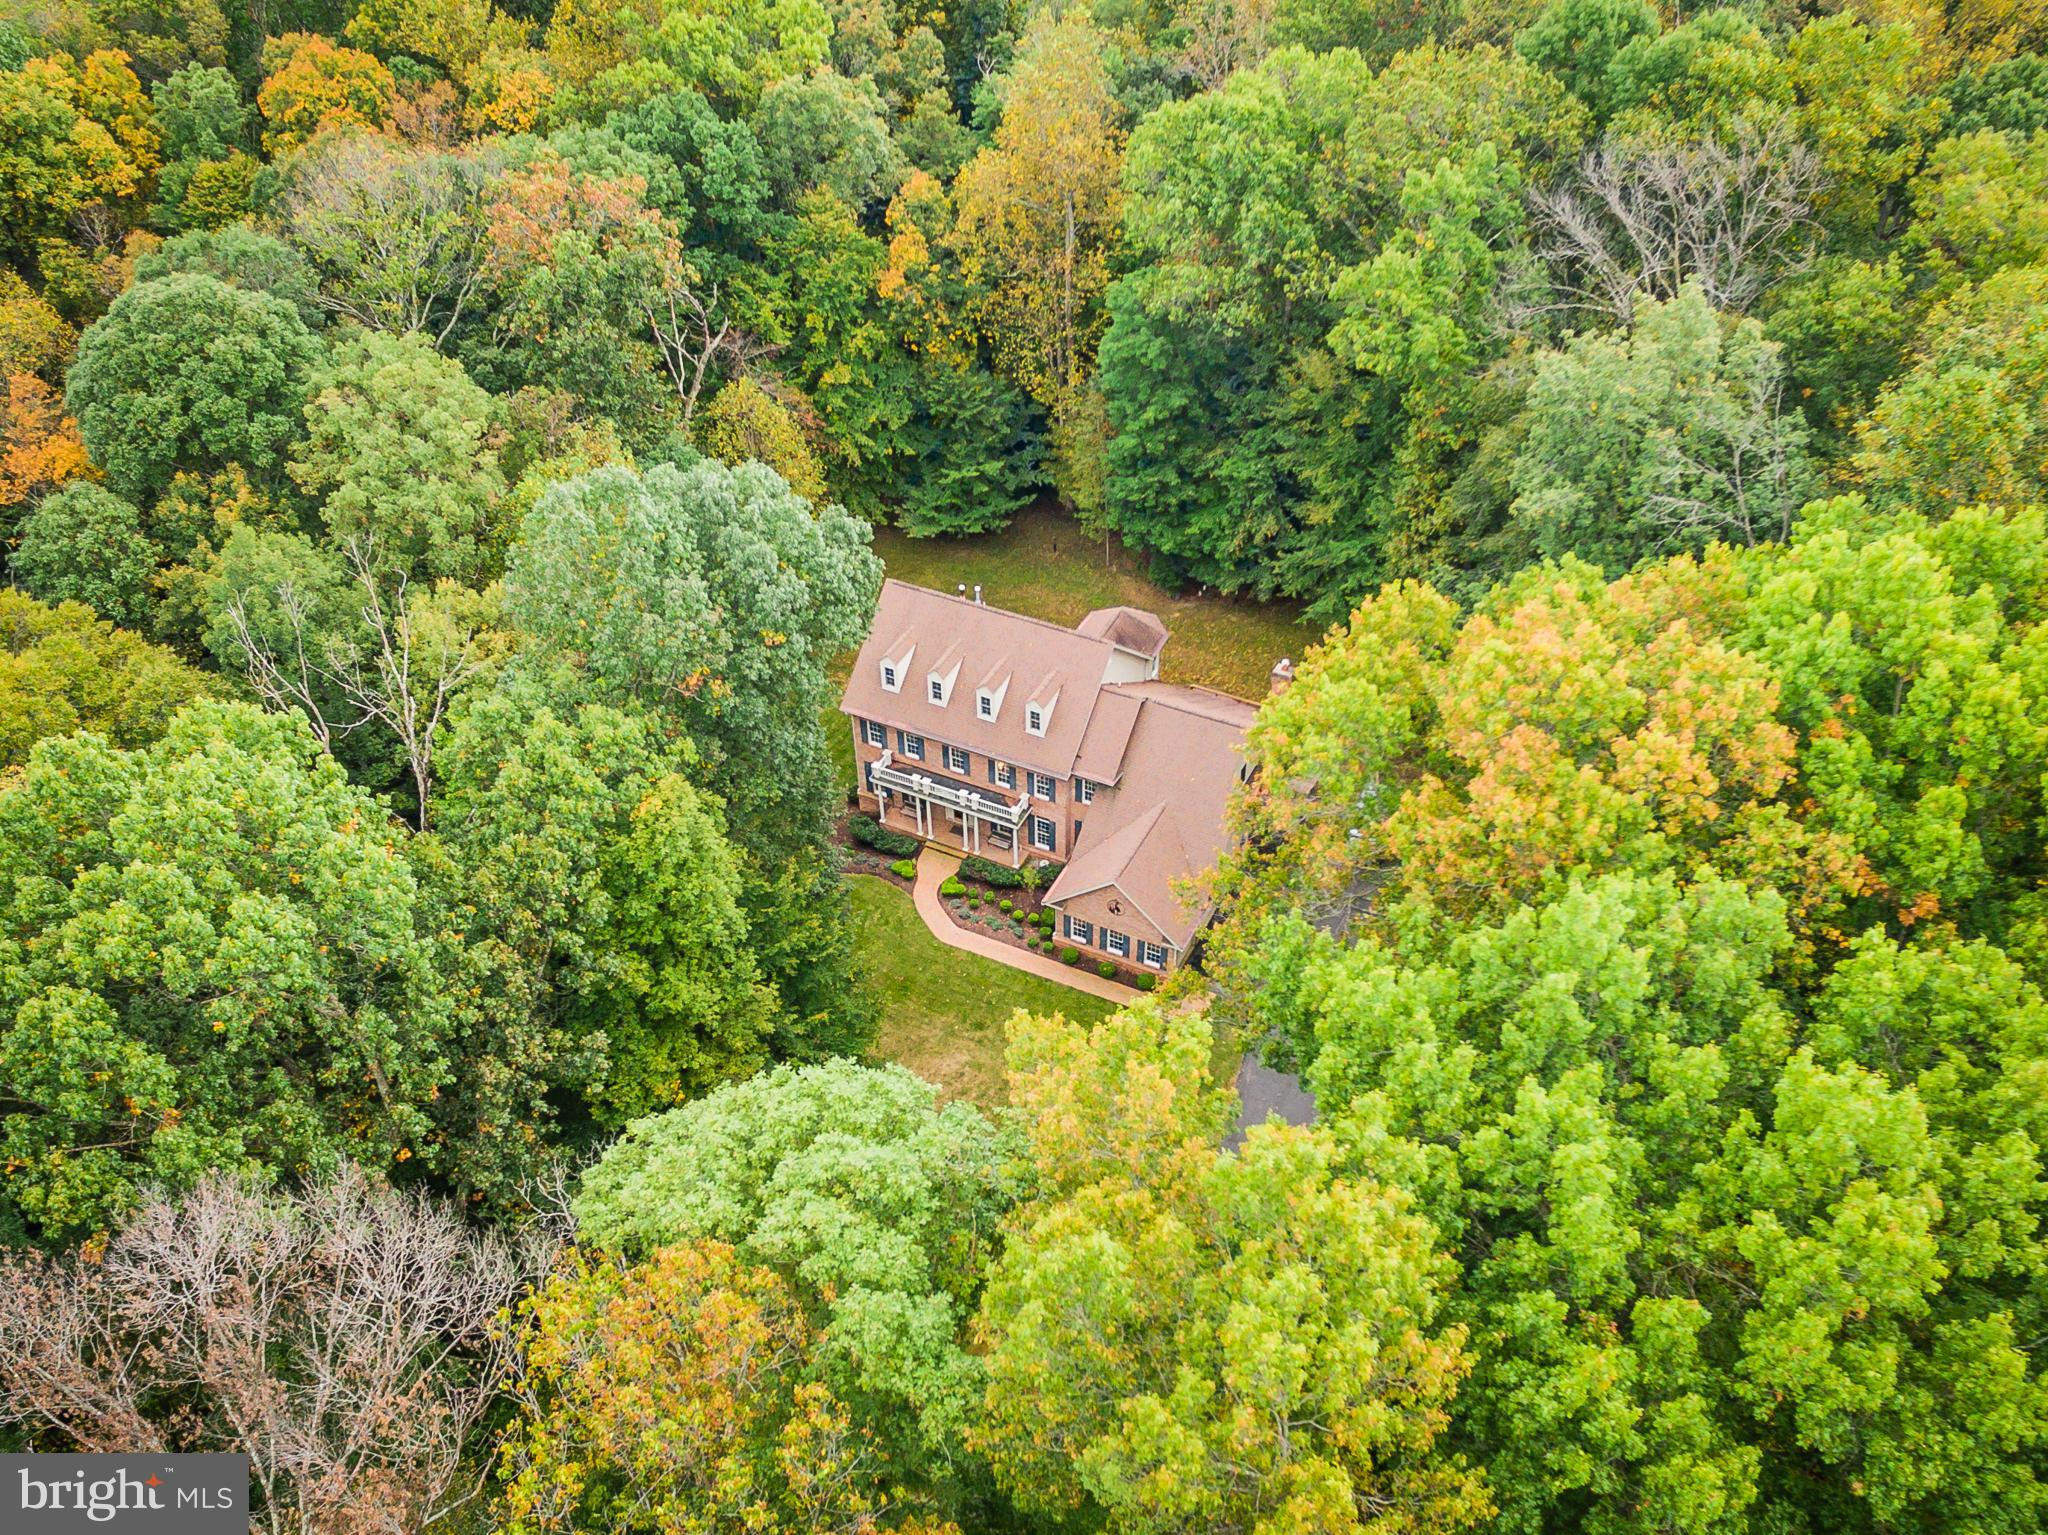 Over 6600 Sq Ft Custom Estate on 6.39 private acres - close to GMU, I-66 & DC Beltway! Surrounded by natural beauty, an open patio & entertainment deck! Plus, 3-story Extension, Finished walkout basement, 3-car side Garage, Grand-sized rooms, Curved staircase! Gourmet granite Kitchen w/open Morning Room- Vaulted FamRm w/wet bar, FP & back staircase- Luxury Master Suite, SittingRm! Loft! Big RecRm